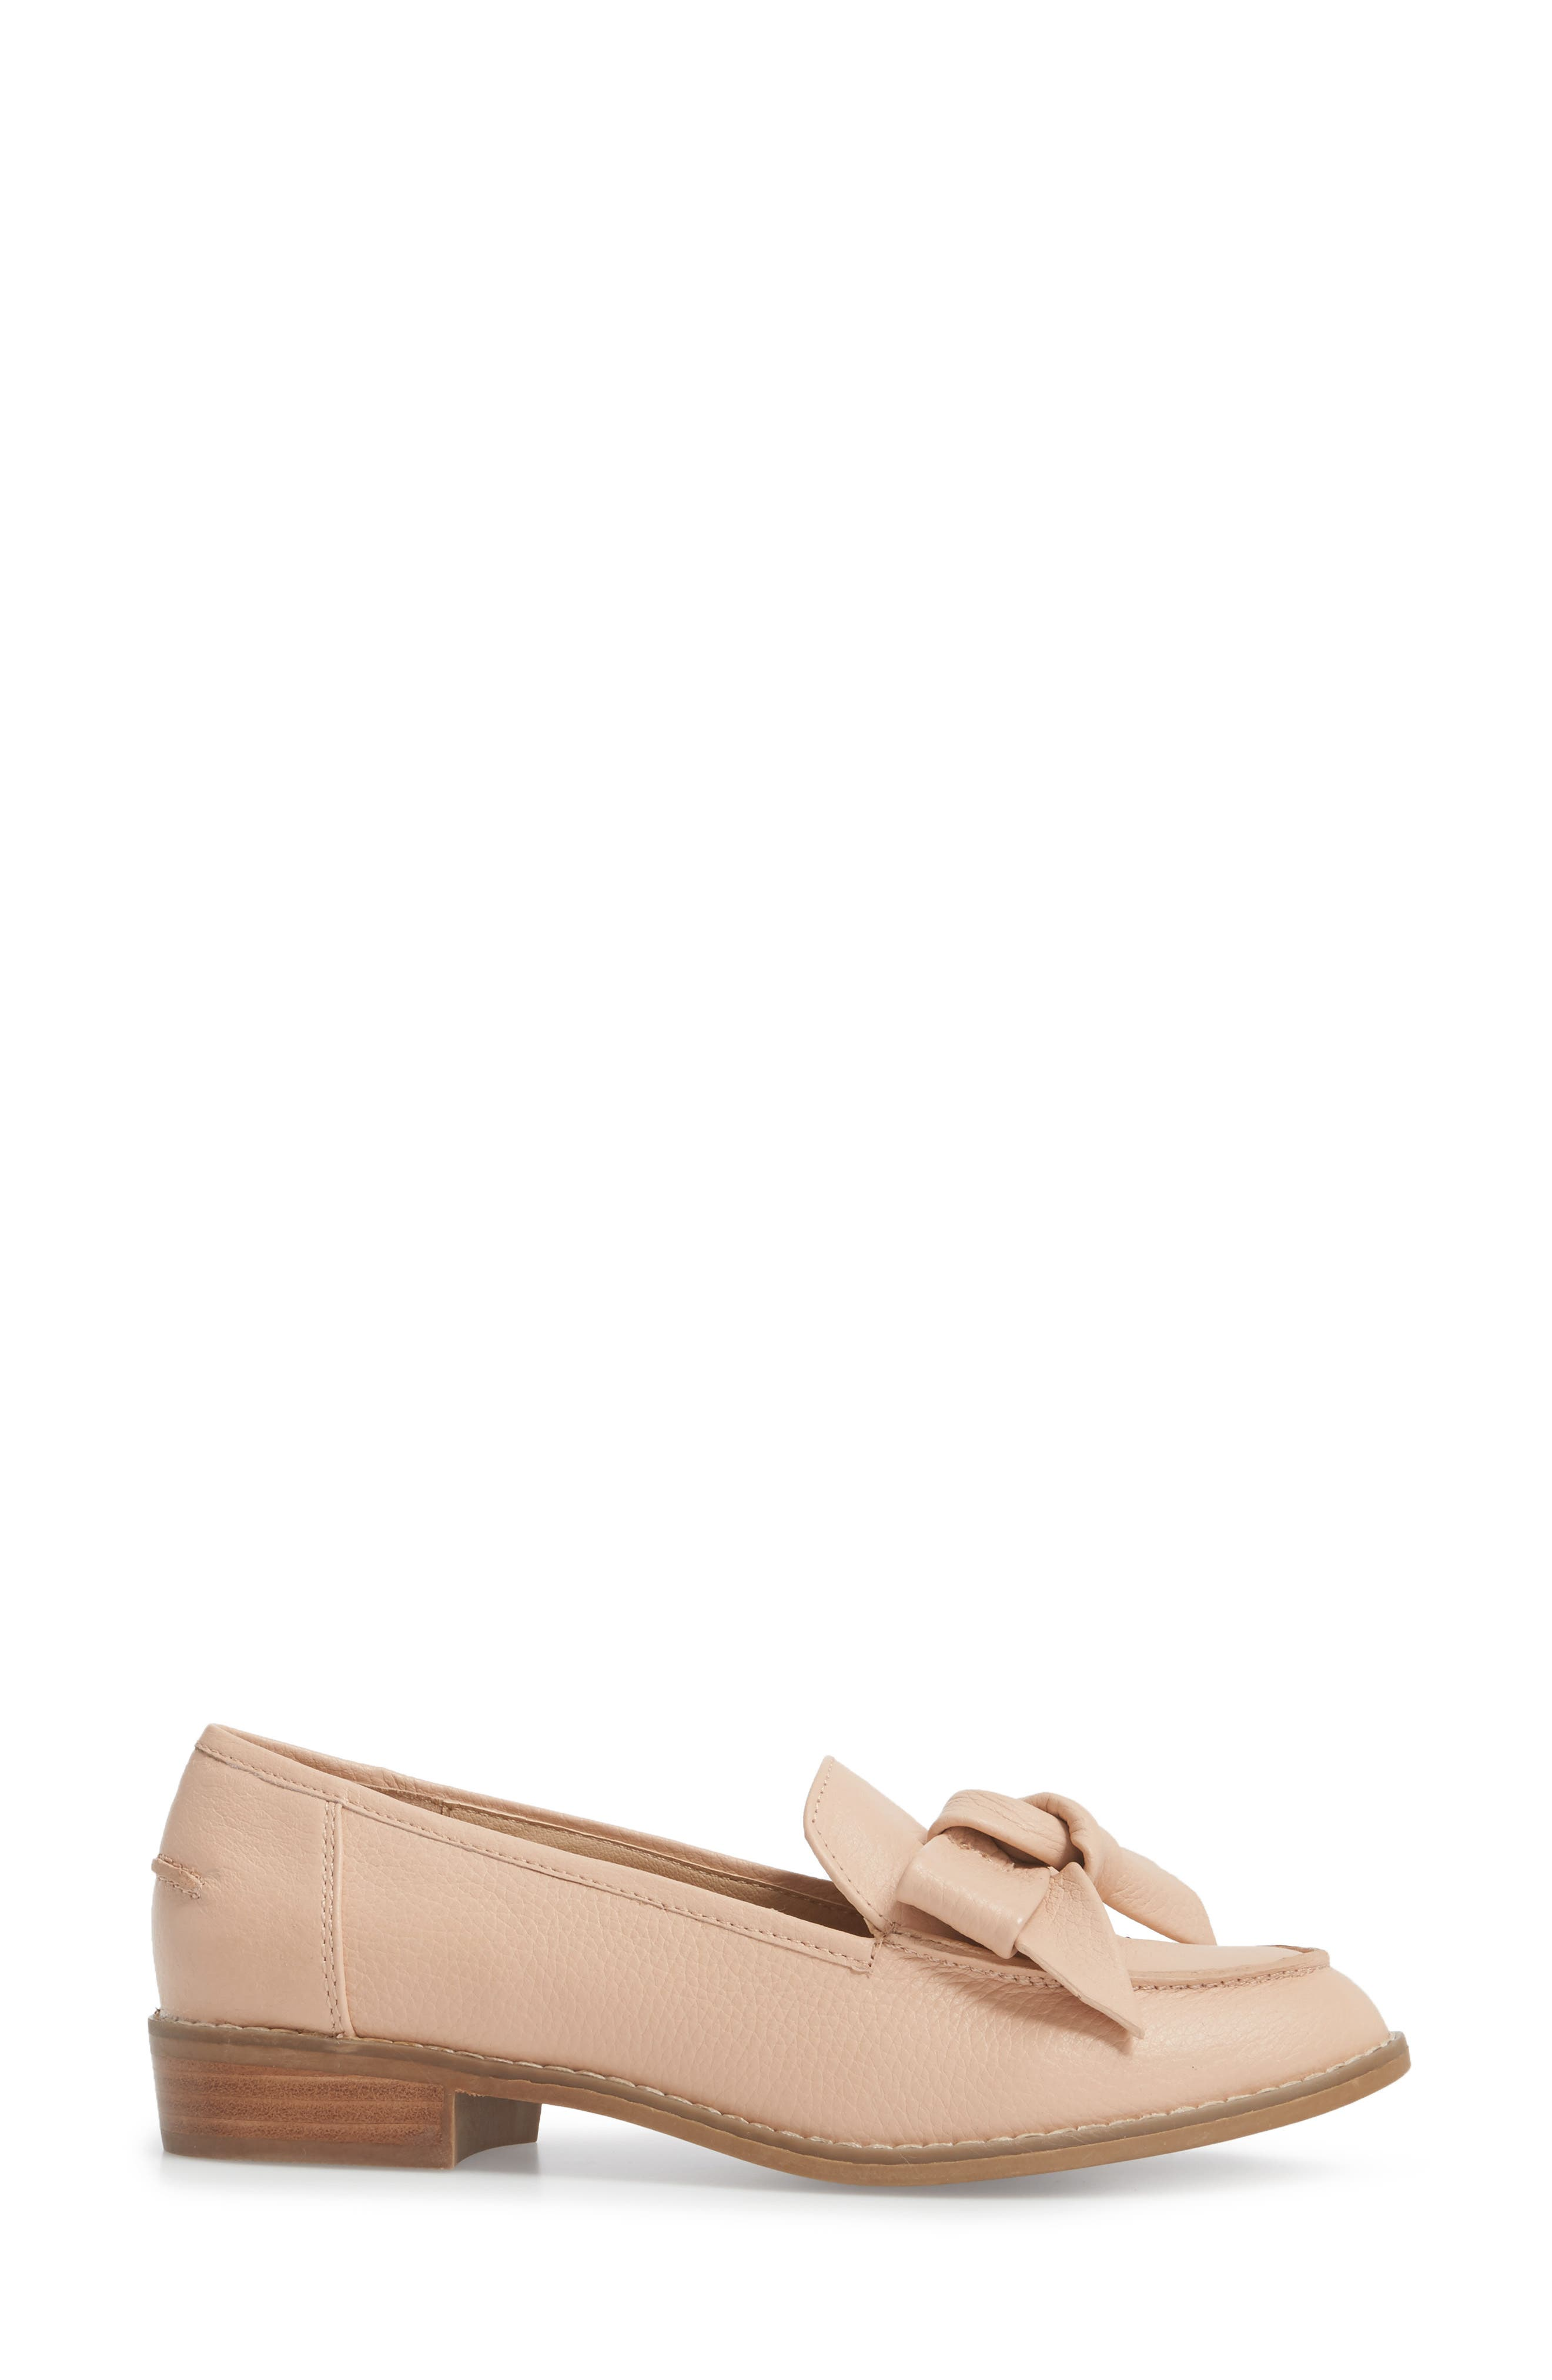 Beaux Loafer,                             Alternate thumbnail 3, color,                             Blush